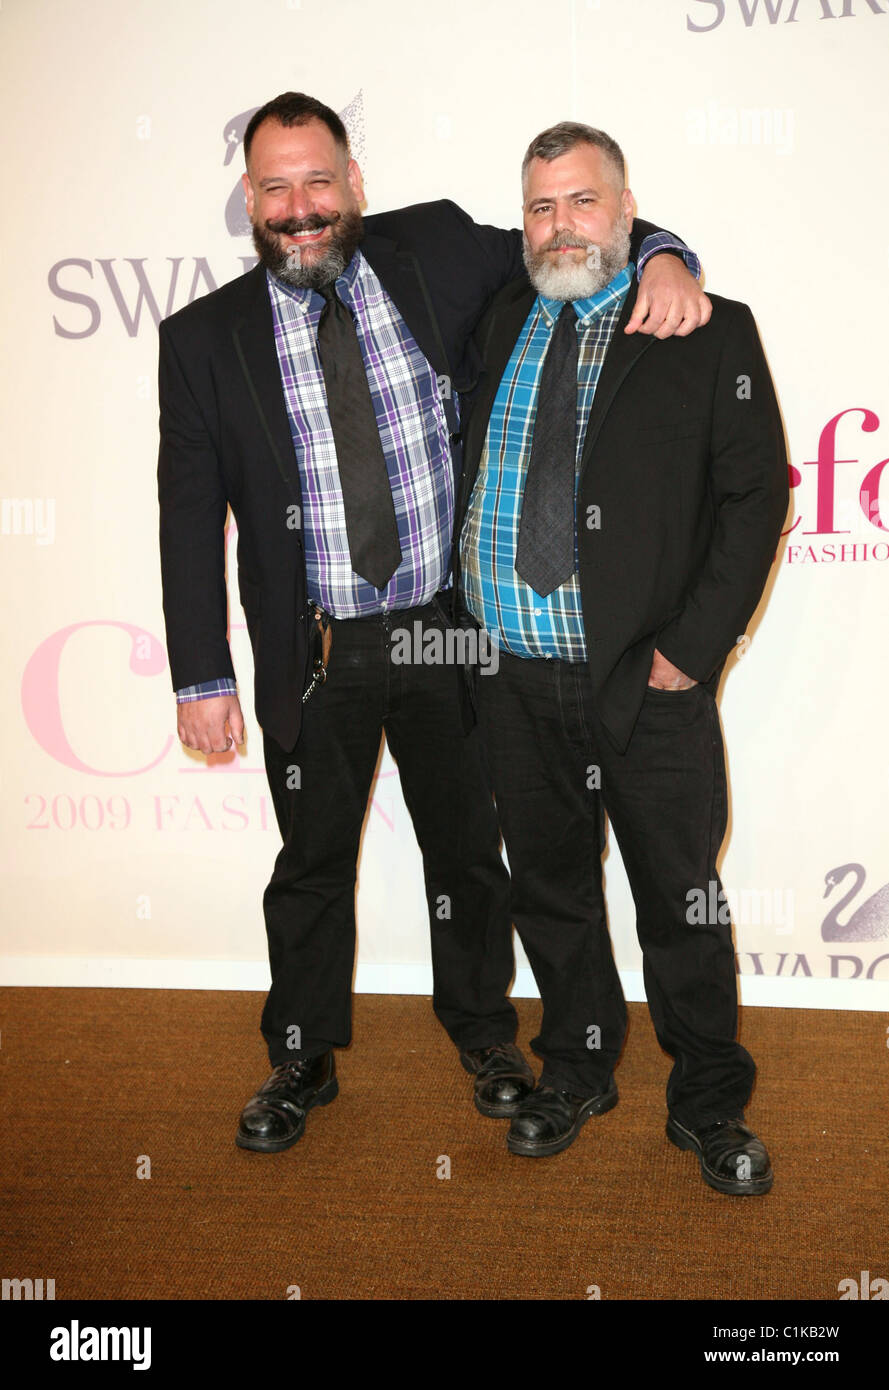 Designers Robert Tagliapietra And Jeffrey Costello At The 2009 Cfda Stock Photo Alamy